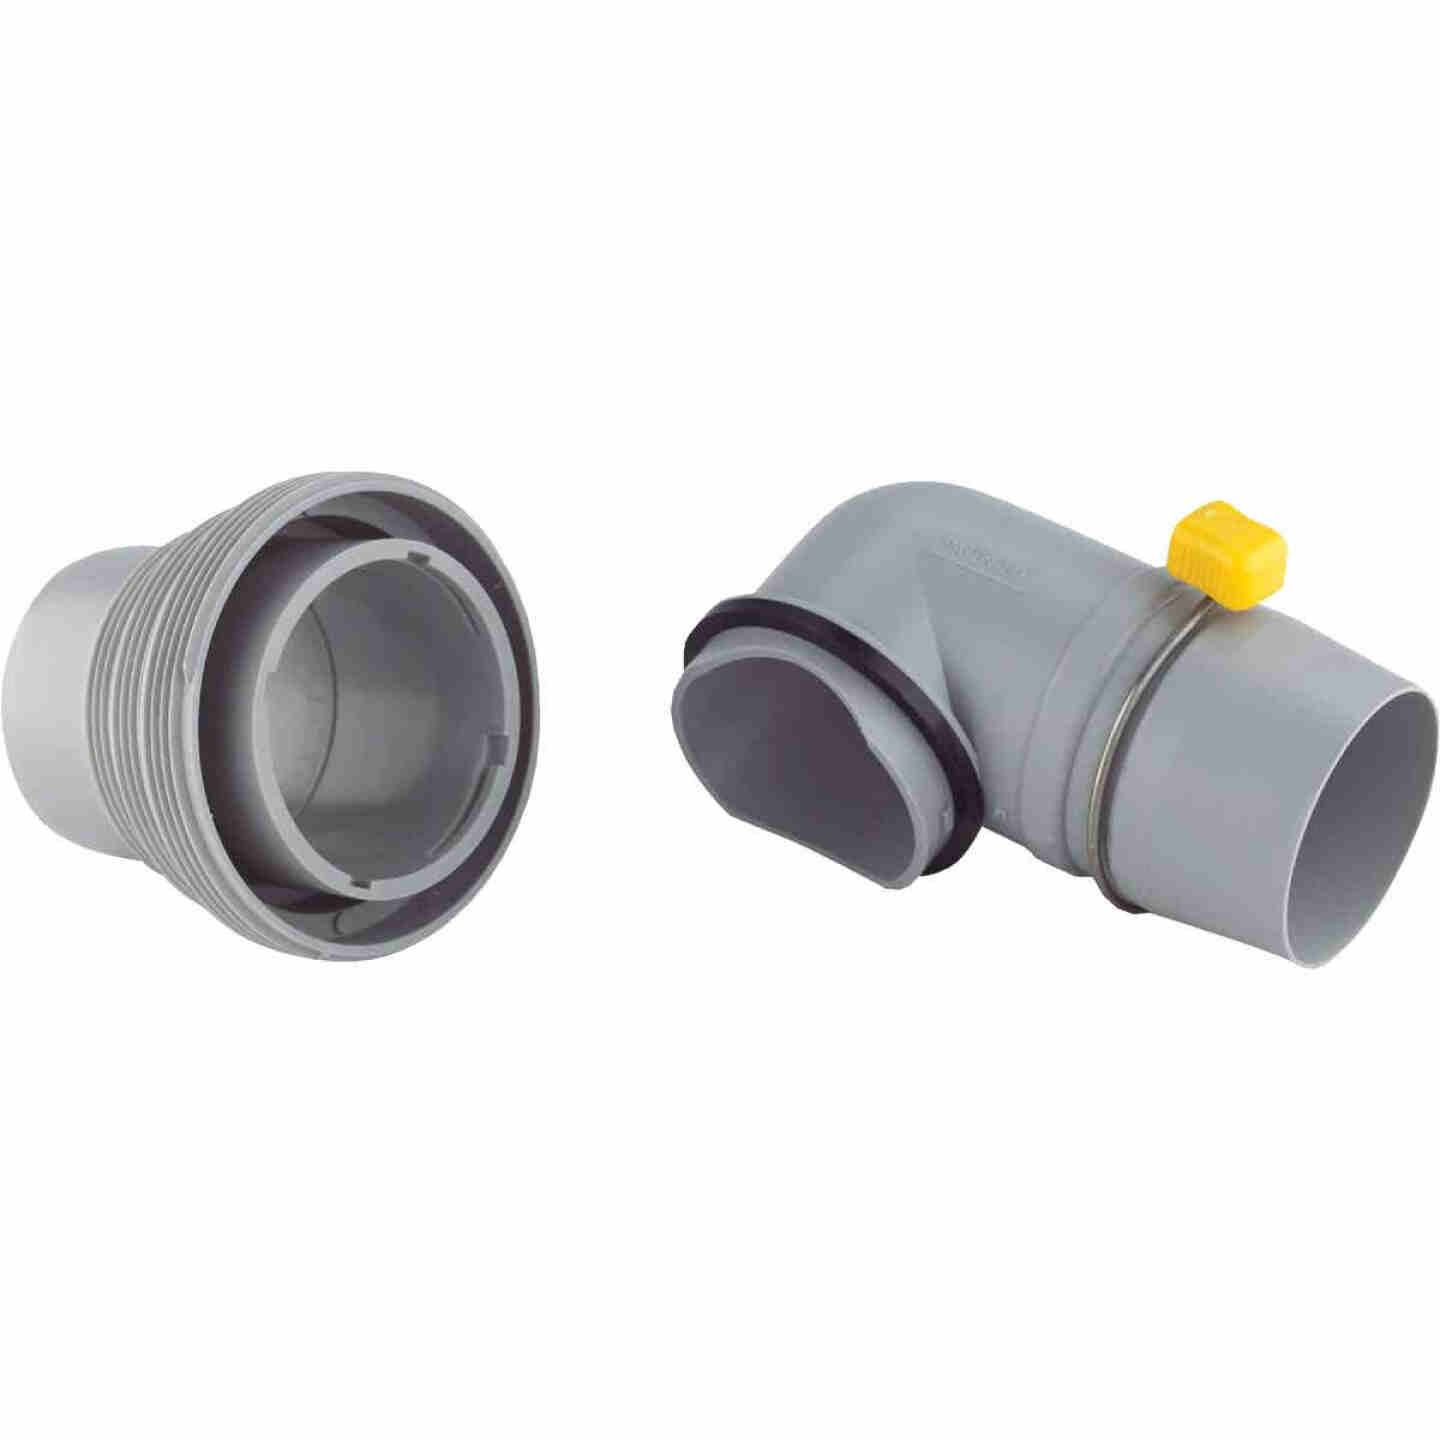 Camco RV Sewer Hose Adapter Image 1